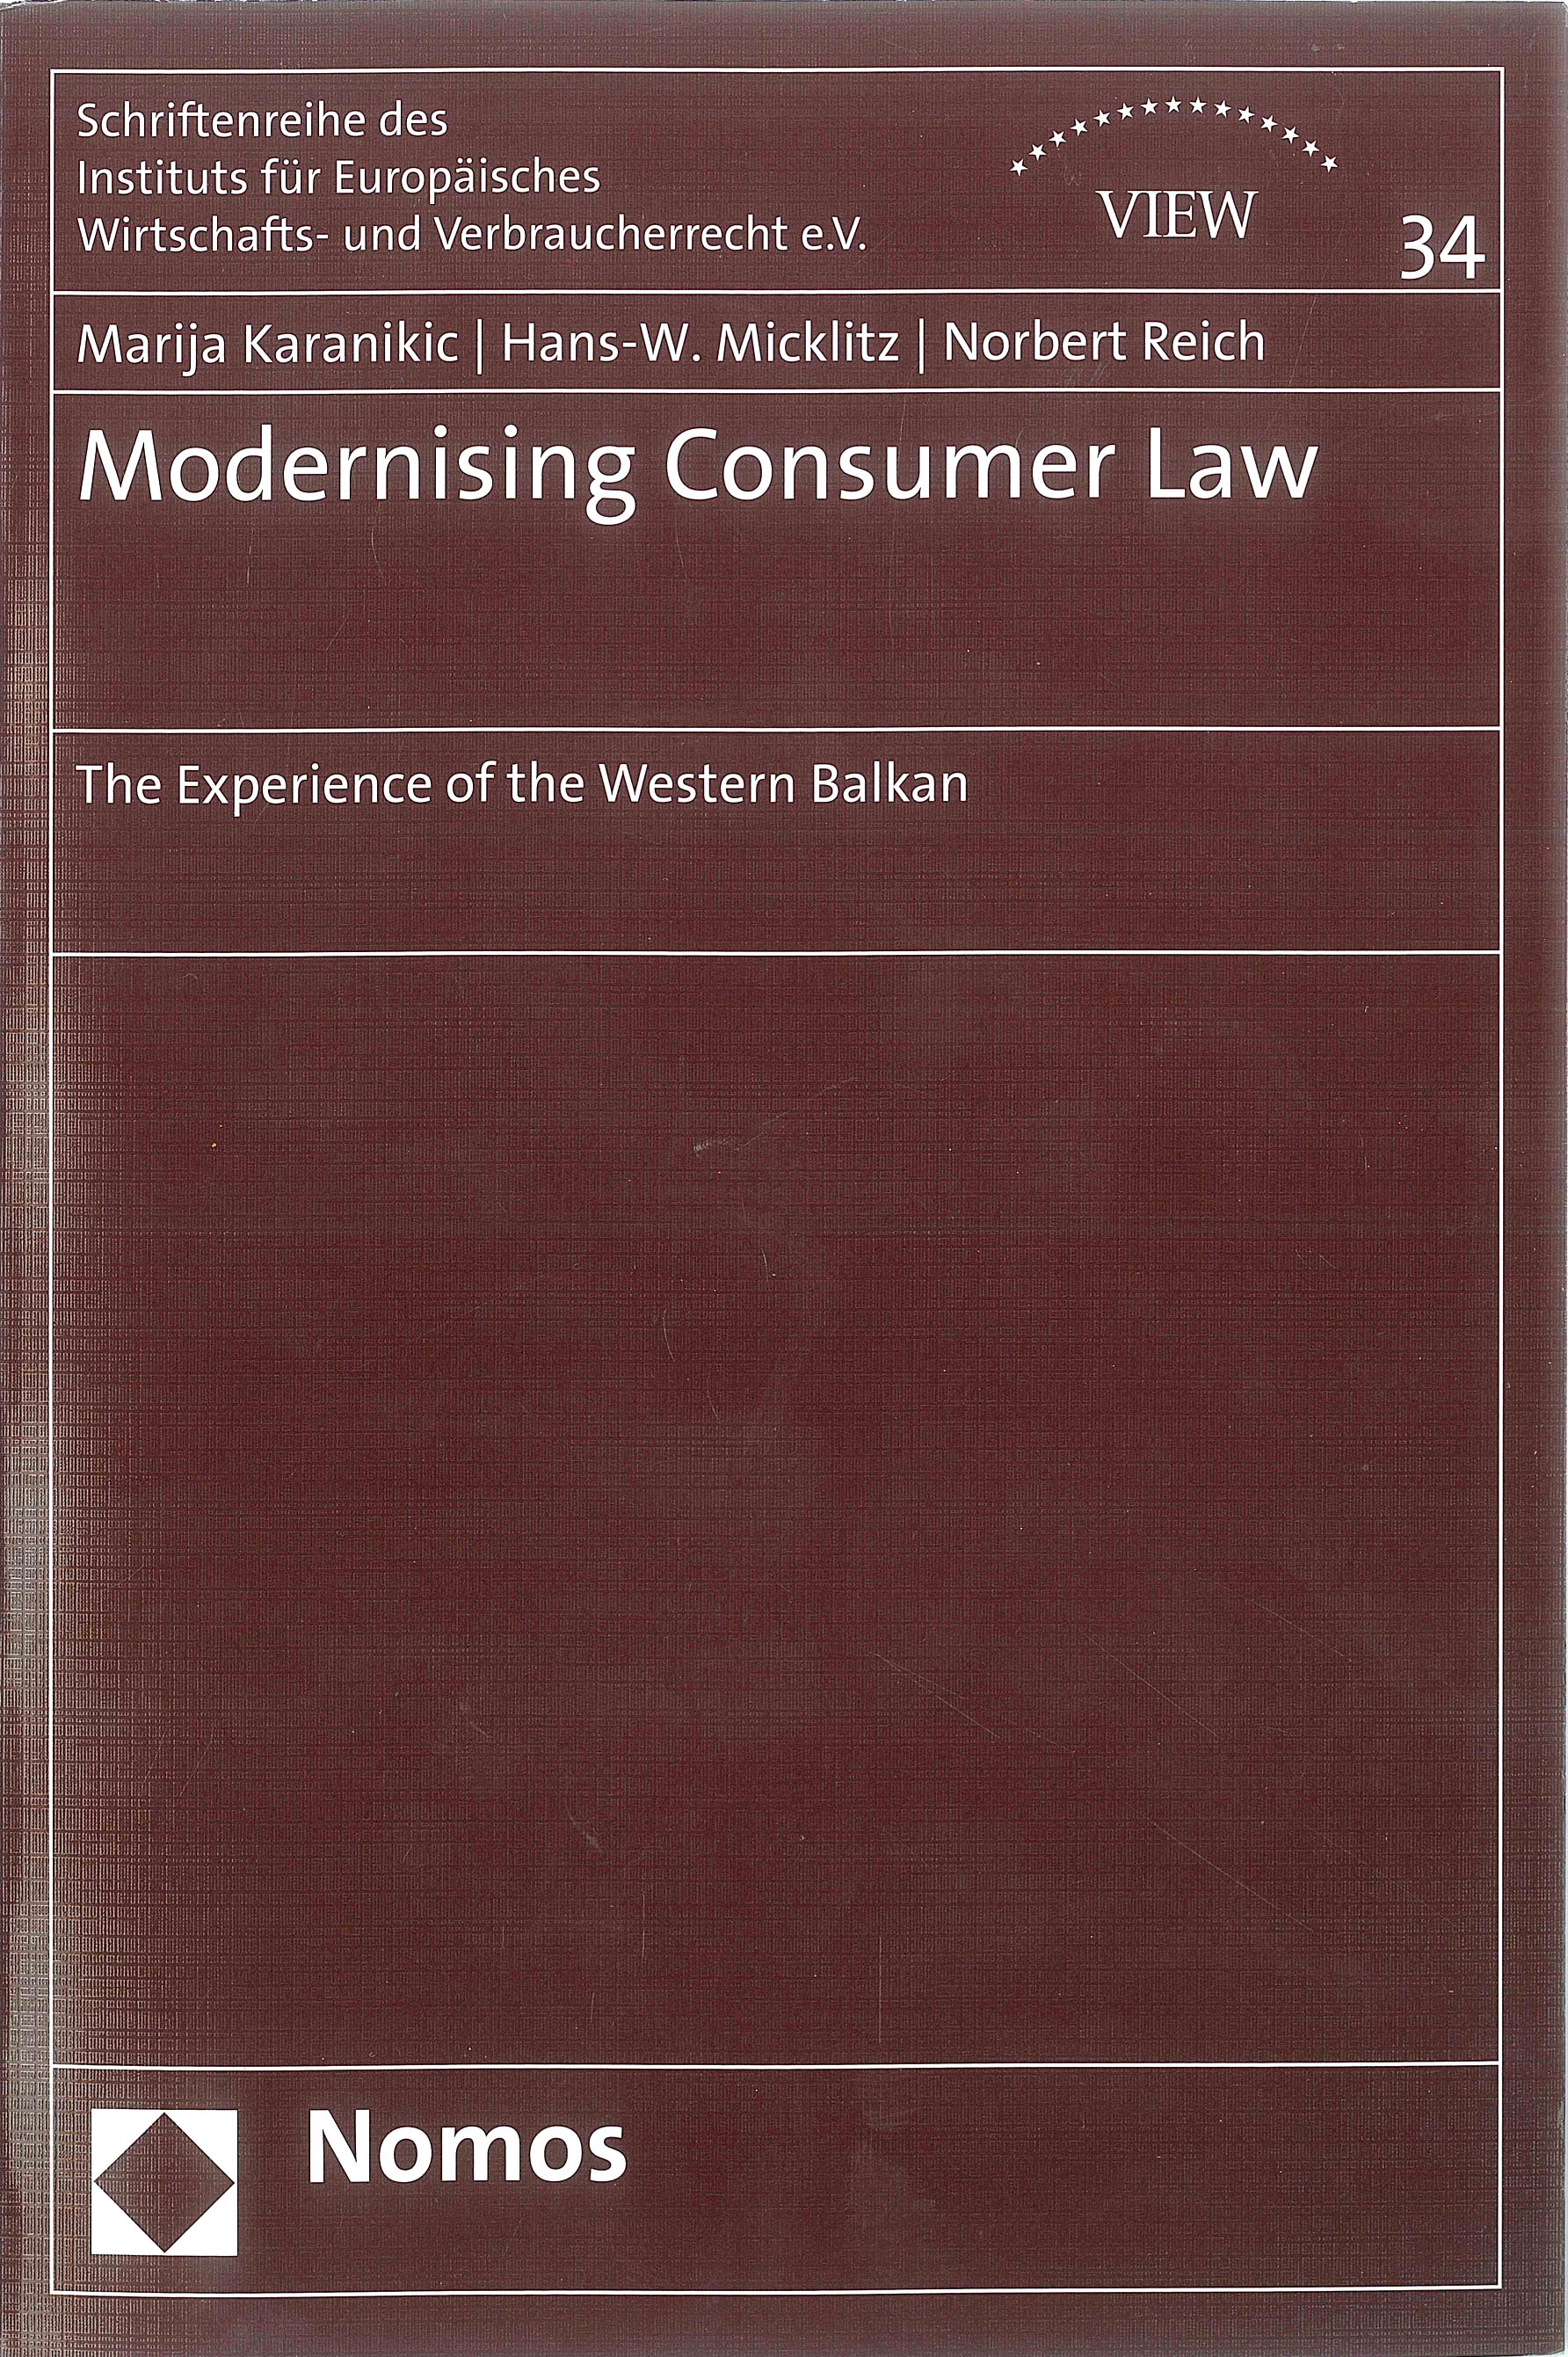 Modernising Consumer Law: The experience of the Western Balkan